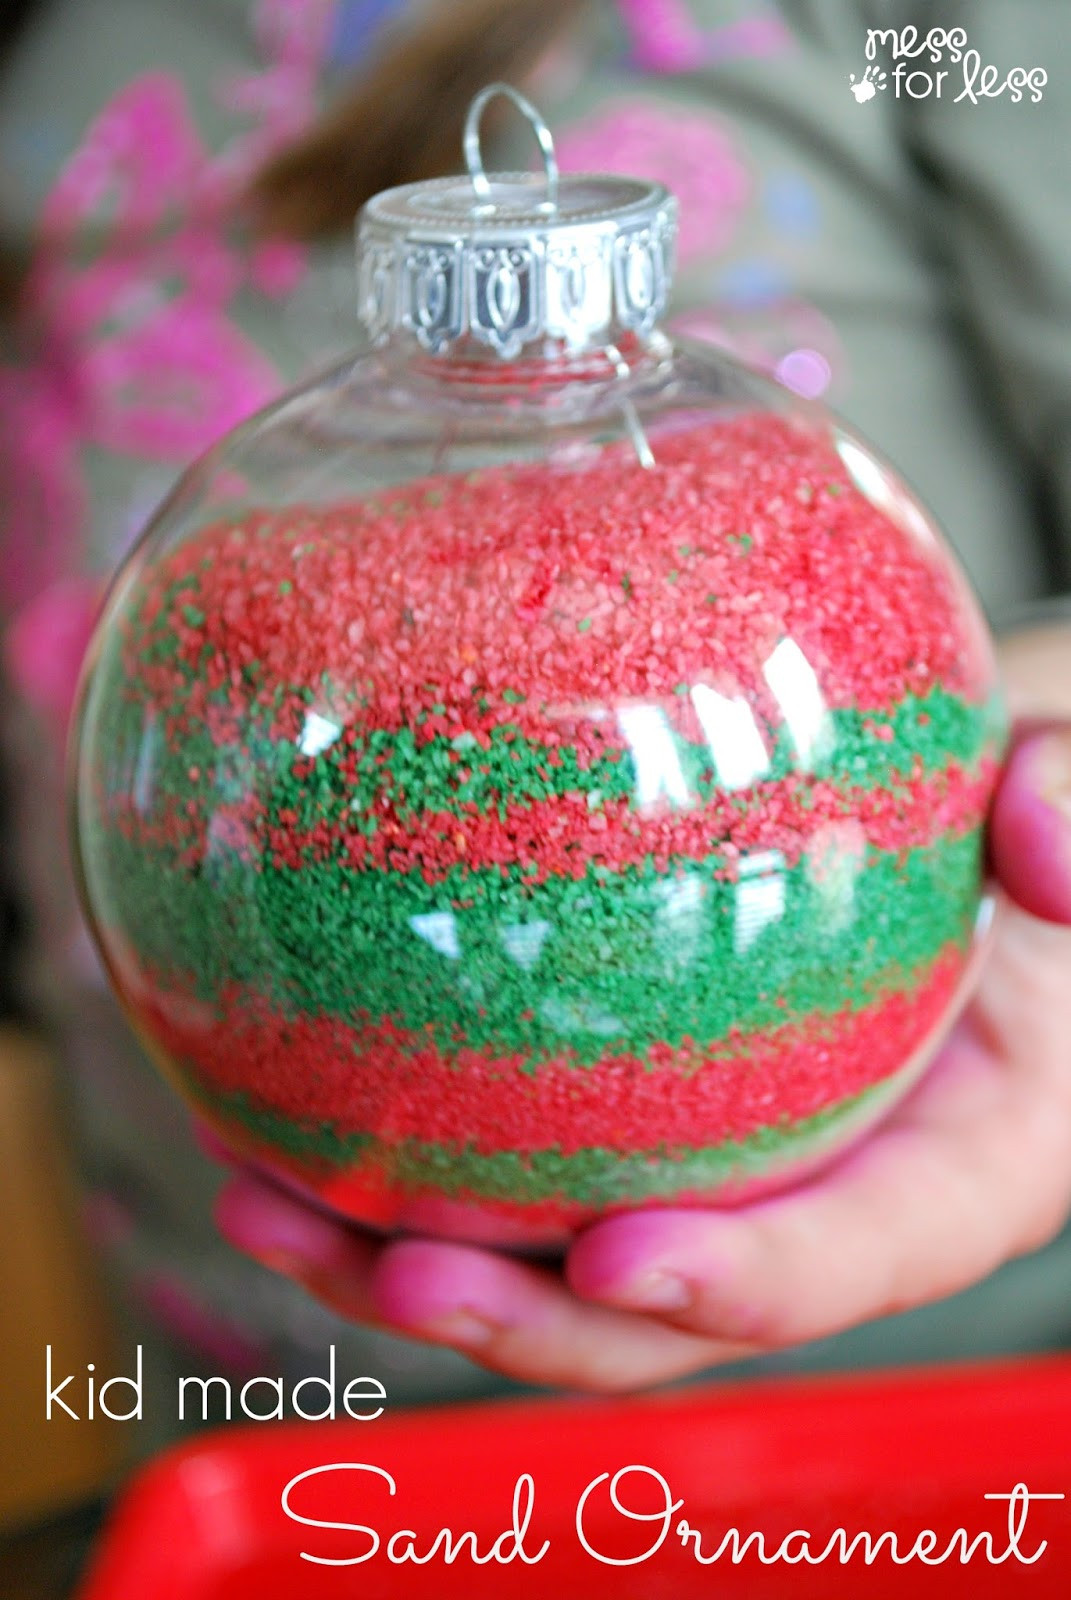 Best ideas about DIY Christmas Ornaments For Kids . Save or Pin Kids Homemade Christmas Ornaments Mess for Less Now.